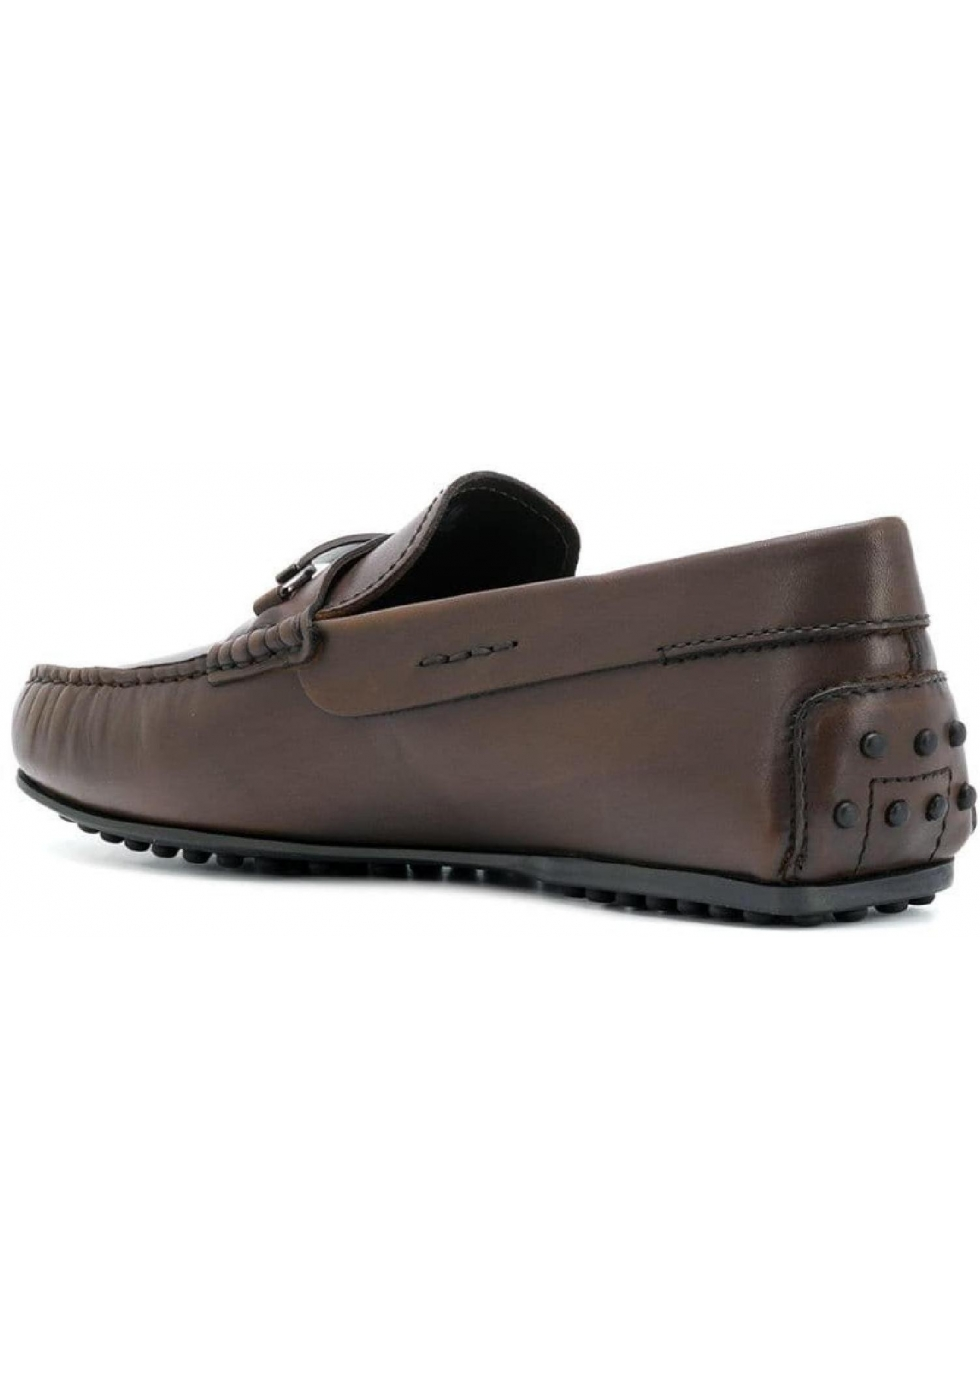 53cebfe3e7c Tod s men s moccasins in Chocolate Leather with metallic buckle ...